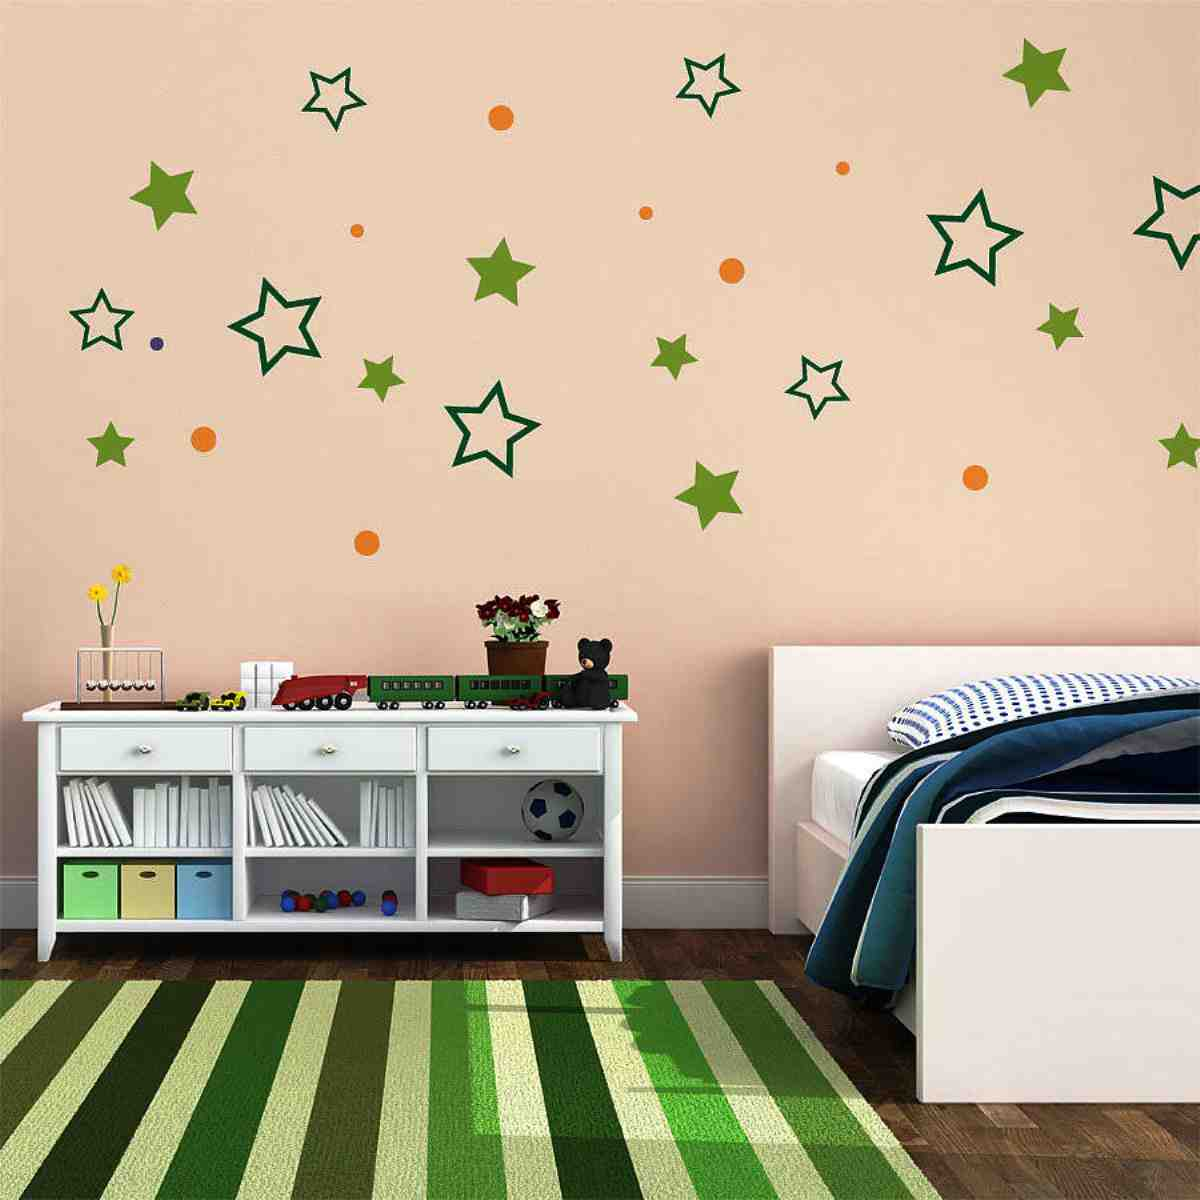 gallery for gt diy bedroom wall decorating ideas 9 ideas to decorate your bedroom walls ptmimages